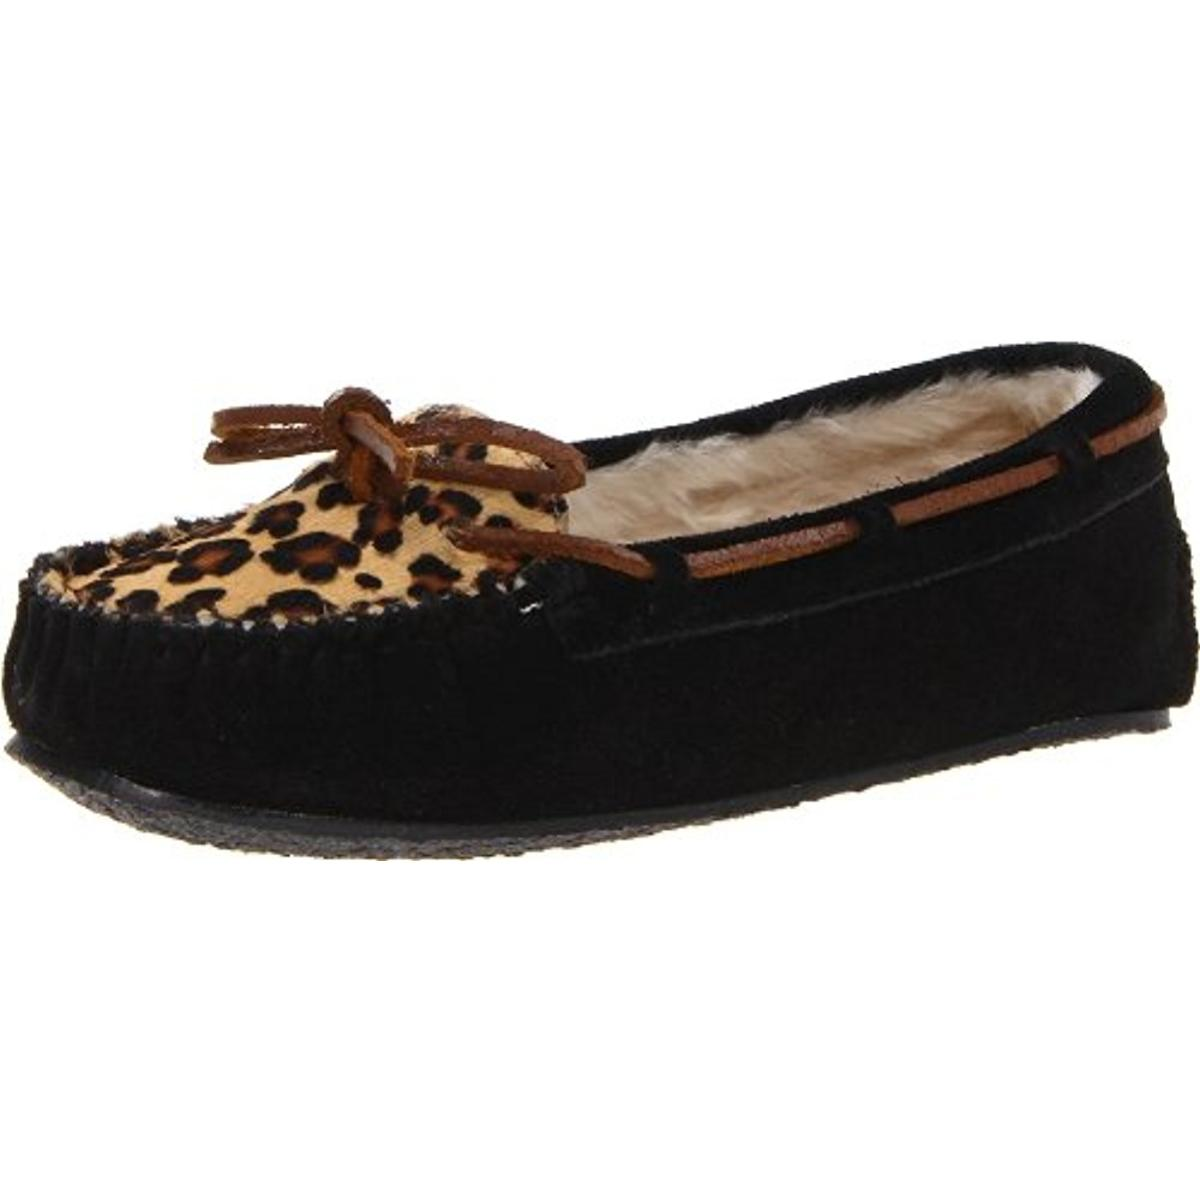 Minnetonka Womens Cally Suede Calf Hair Moccasin Slippers by Minnetonka